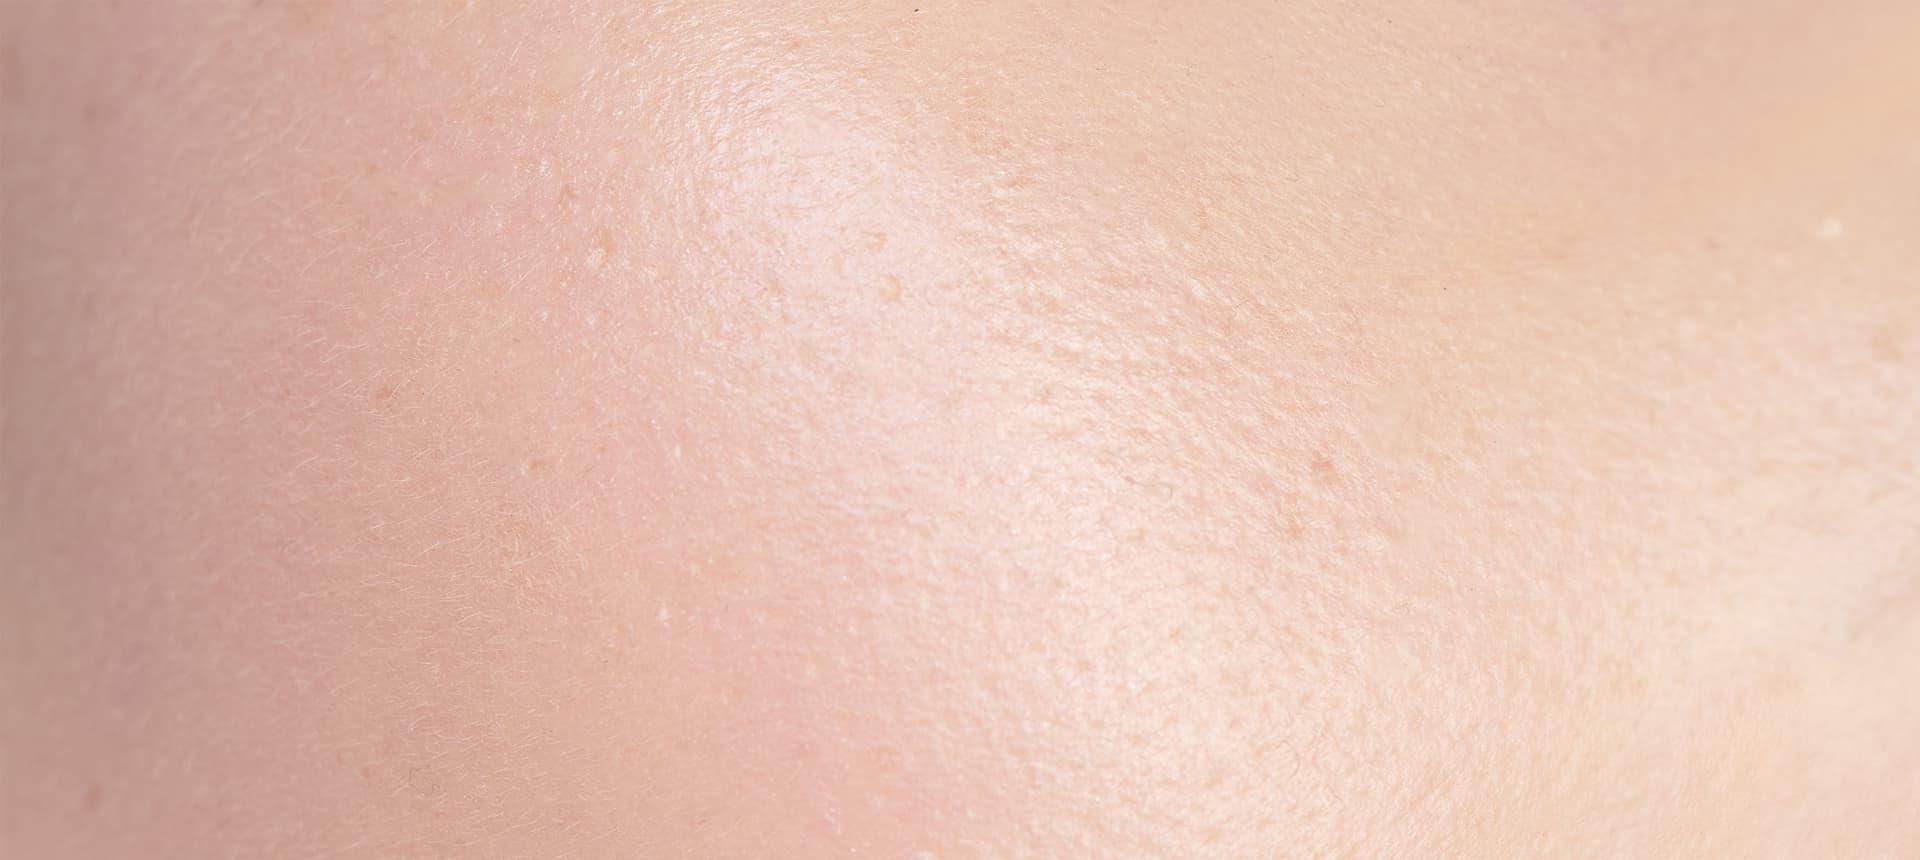 Exposome impacts: The effects on the skin